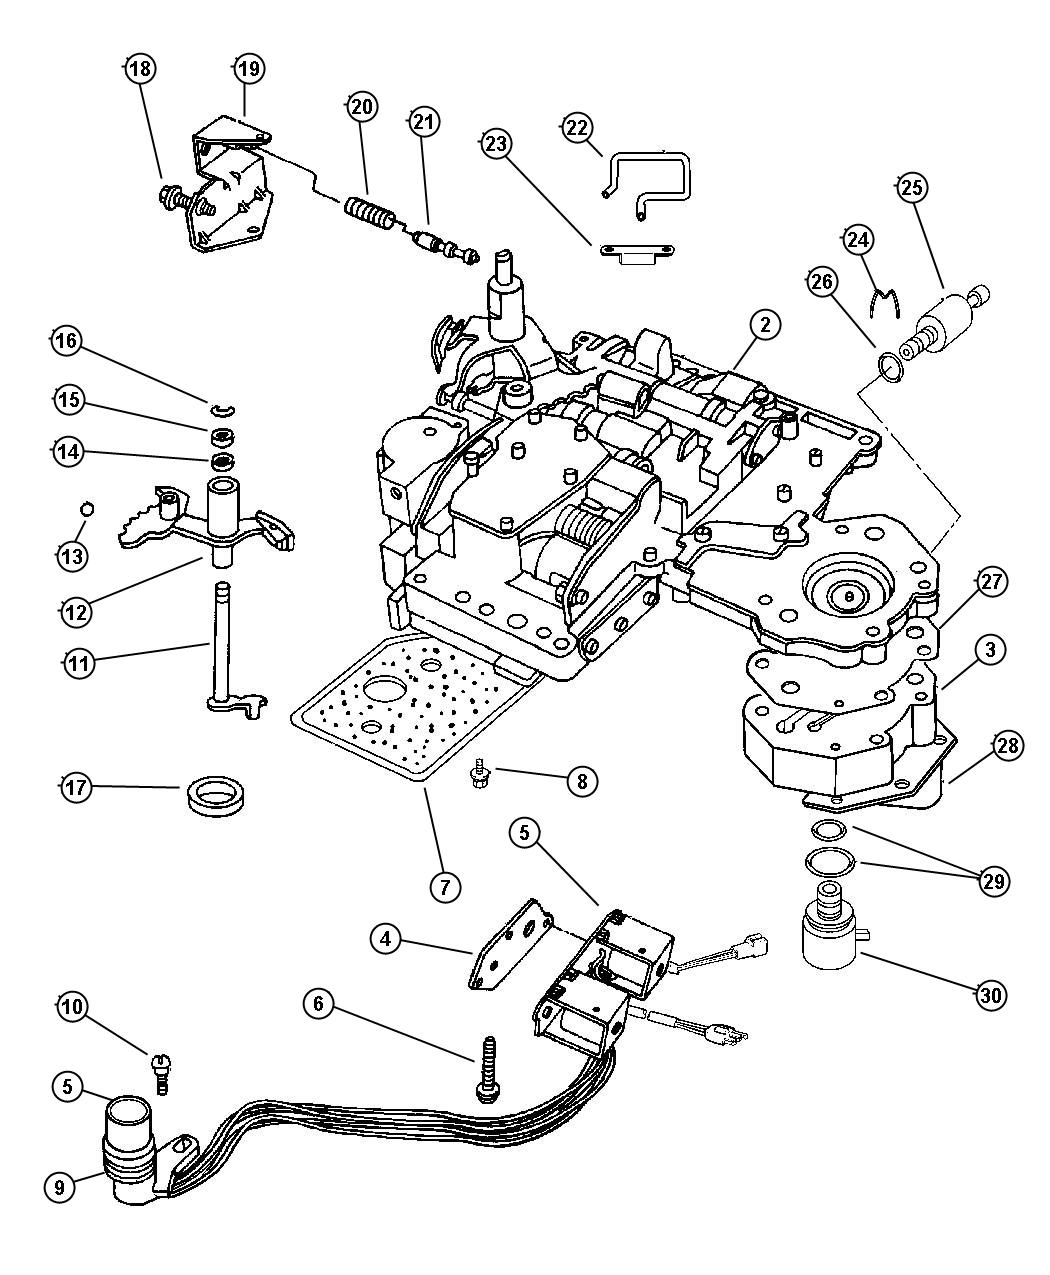 1996 Dodge Solenoid  Transmission Overdrive  Prong  Obgj  Cutomatic